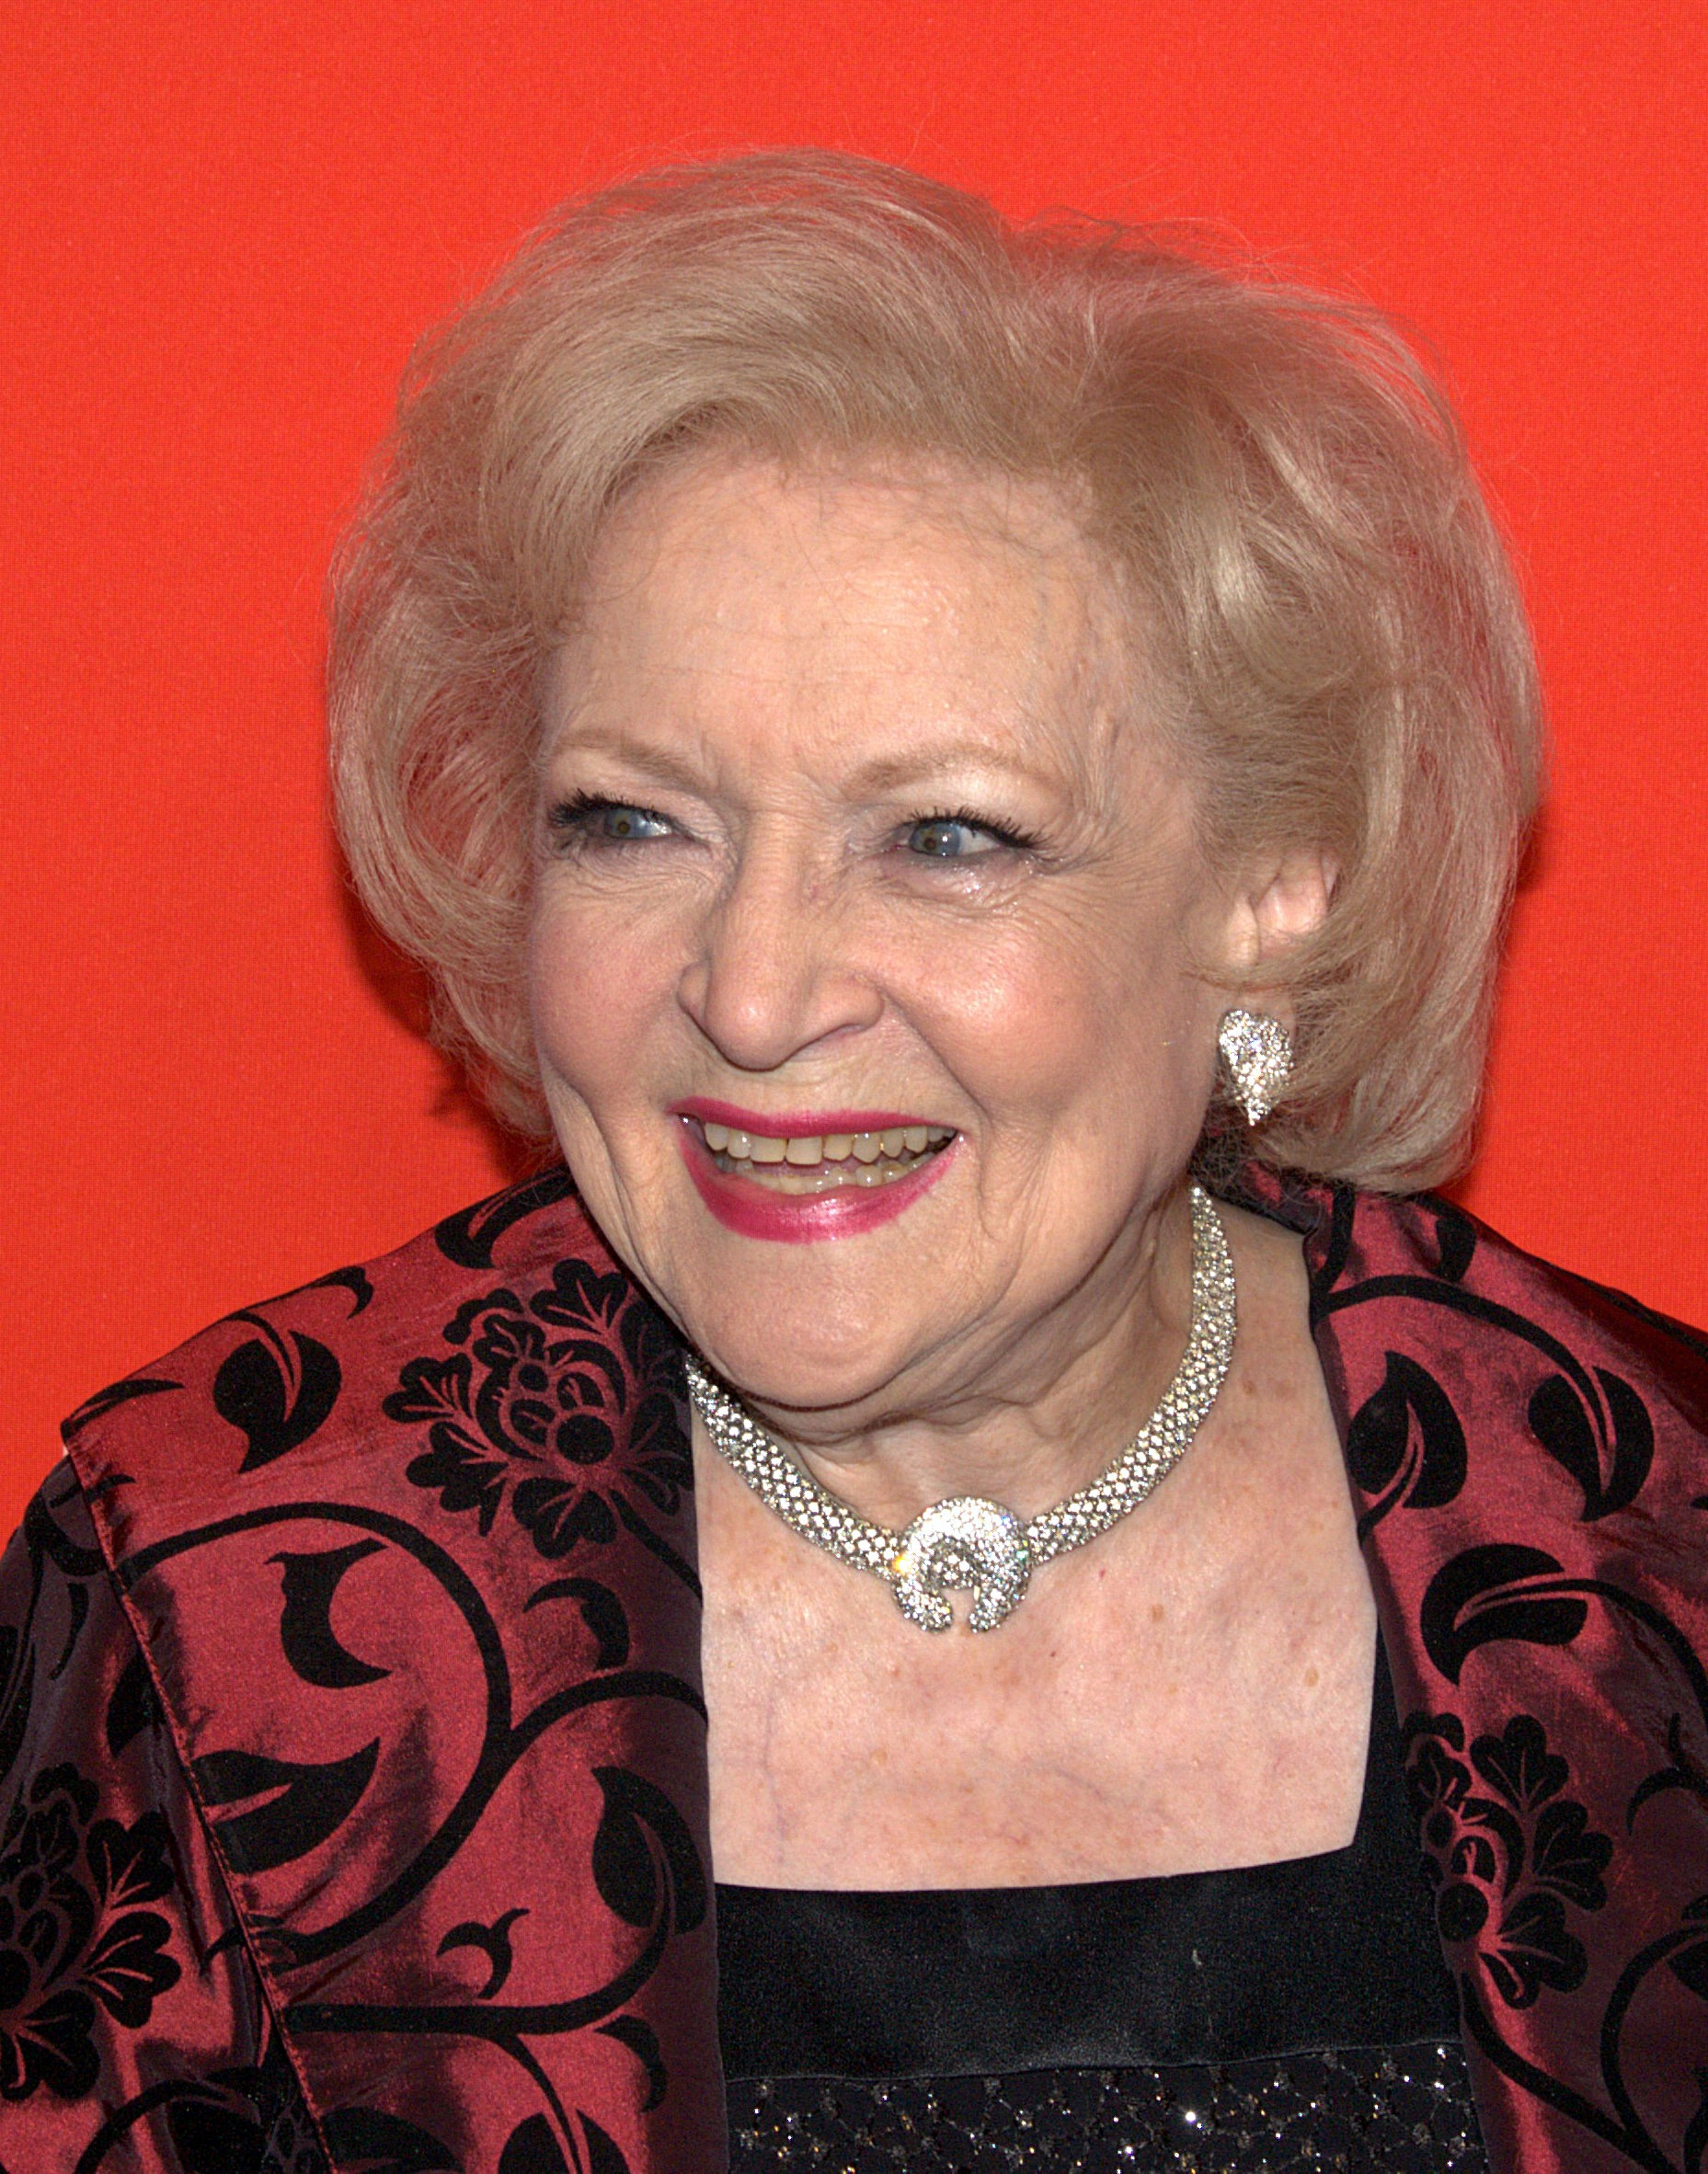 Photo of Betty White: Actress from the United States